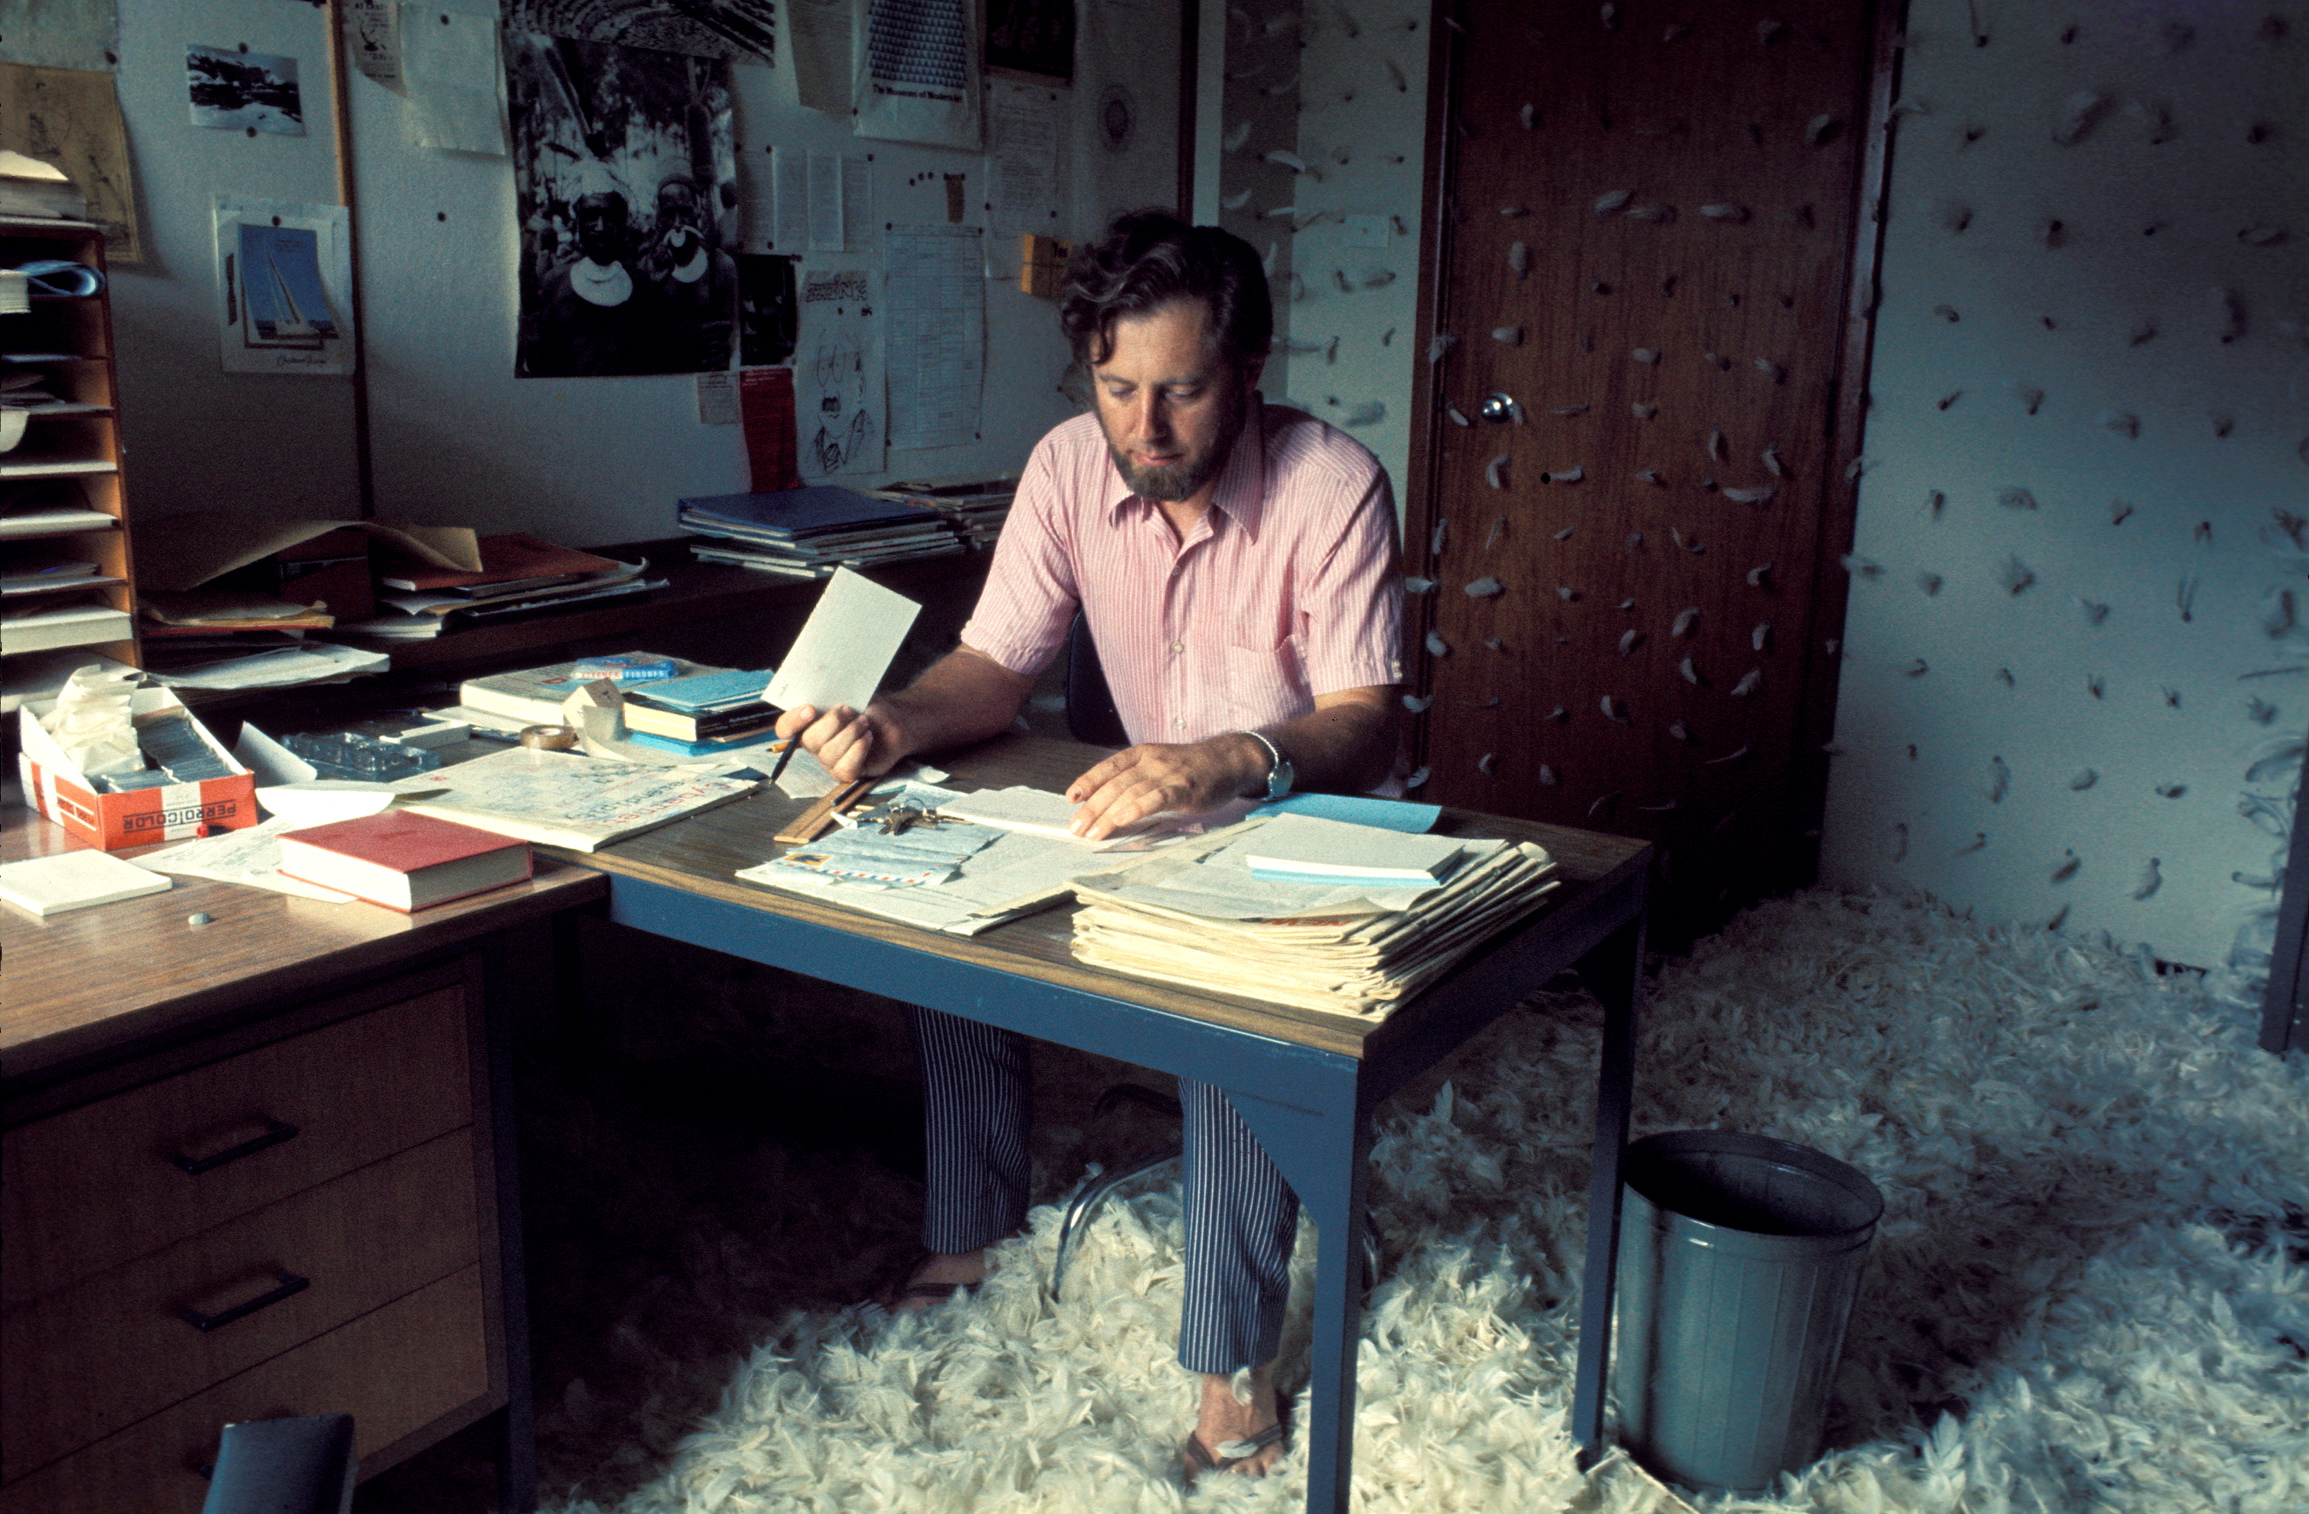 11 Donald Brook and post-object art:   Stephen Jones   Herbert Flugelman,  Donald Brook in Feathered Office , March 1971, colour transparency, 2.4 x 3.6cm; Art Gallery of New South Wales Archive, Sydney; © Herbert Flugelman, licensed by Copyright Agency, Australia